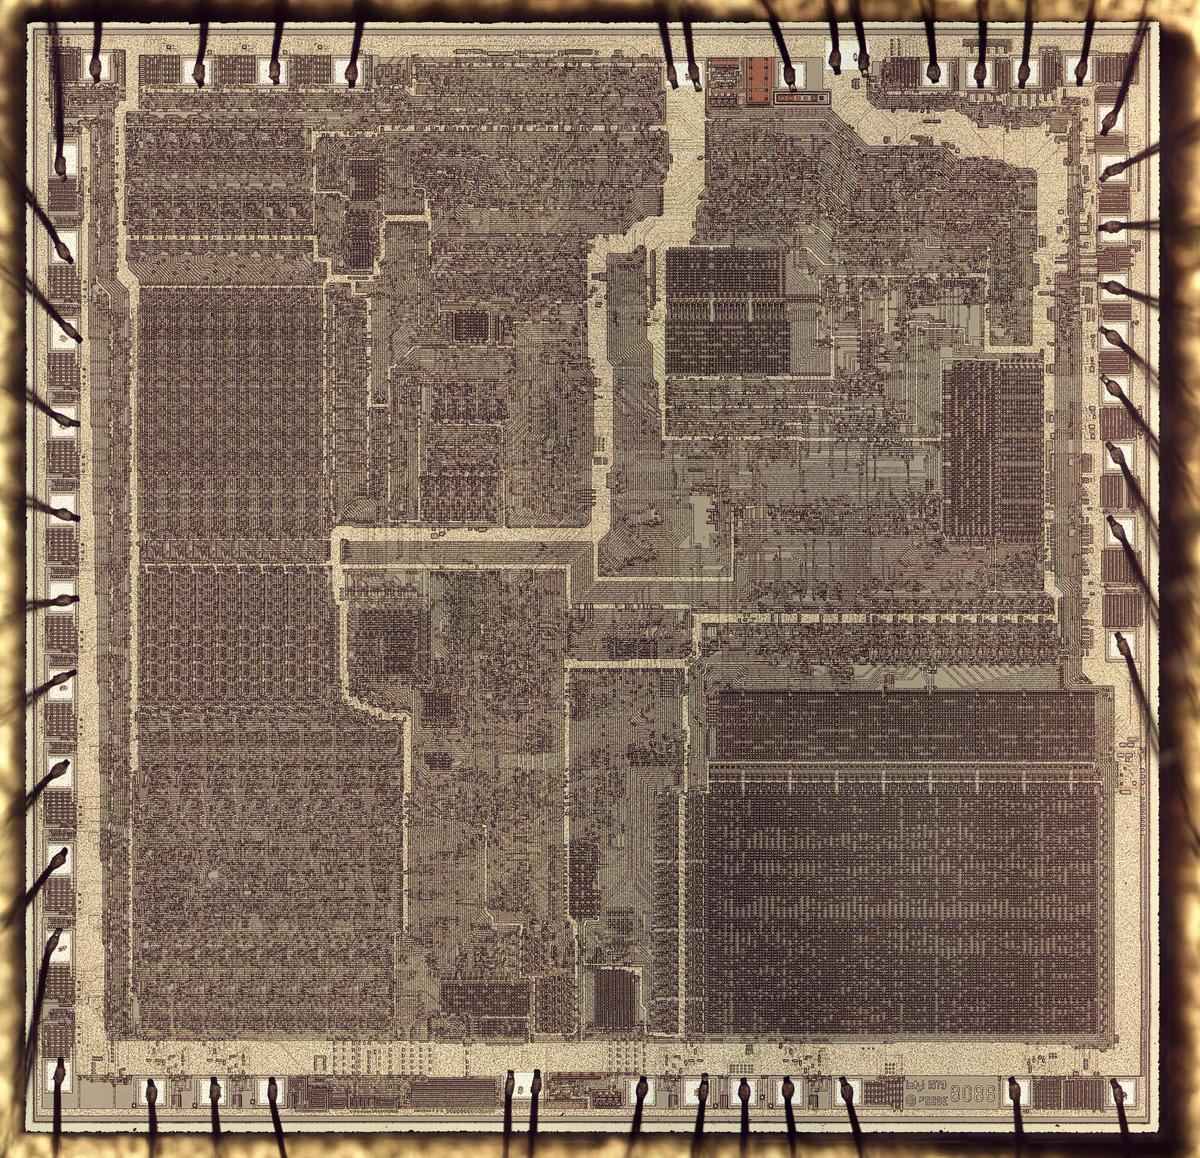 Die photo of the 8086, showing the metal layer. Around the edges, bond wires are connected to pads on the die. Click for a large, high-resolution image.